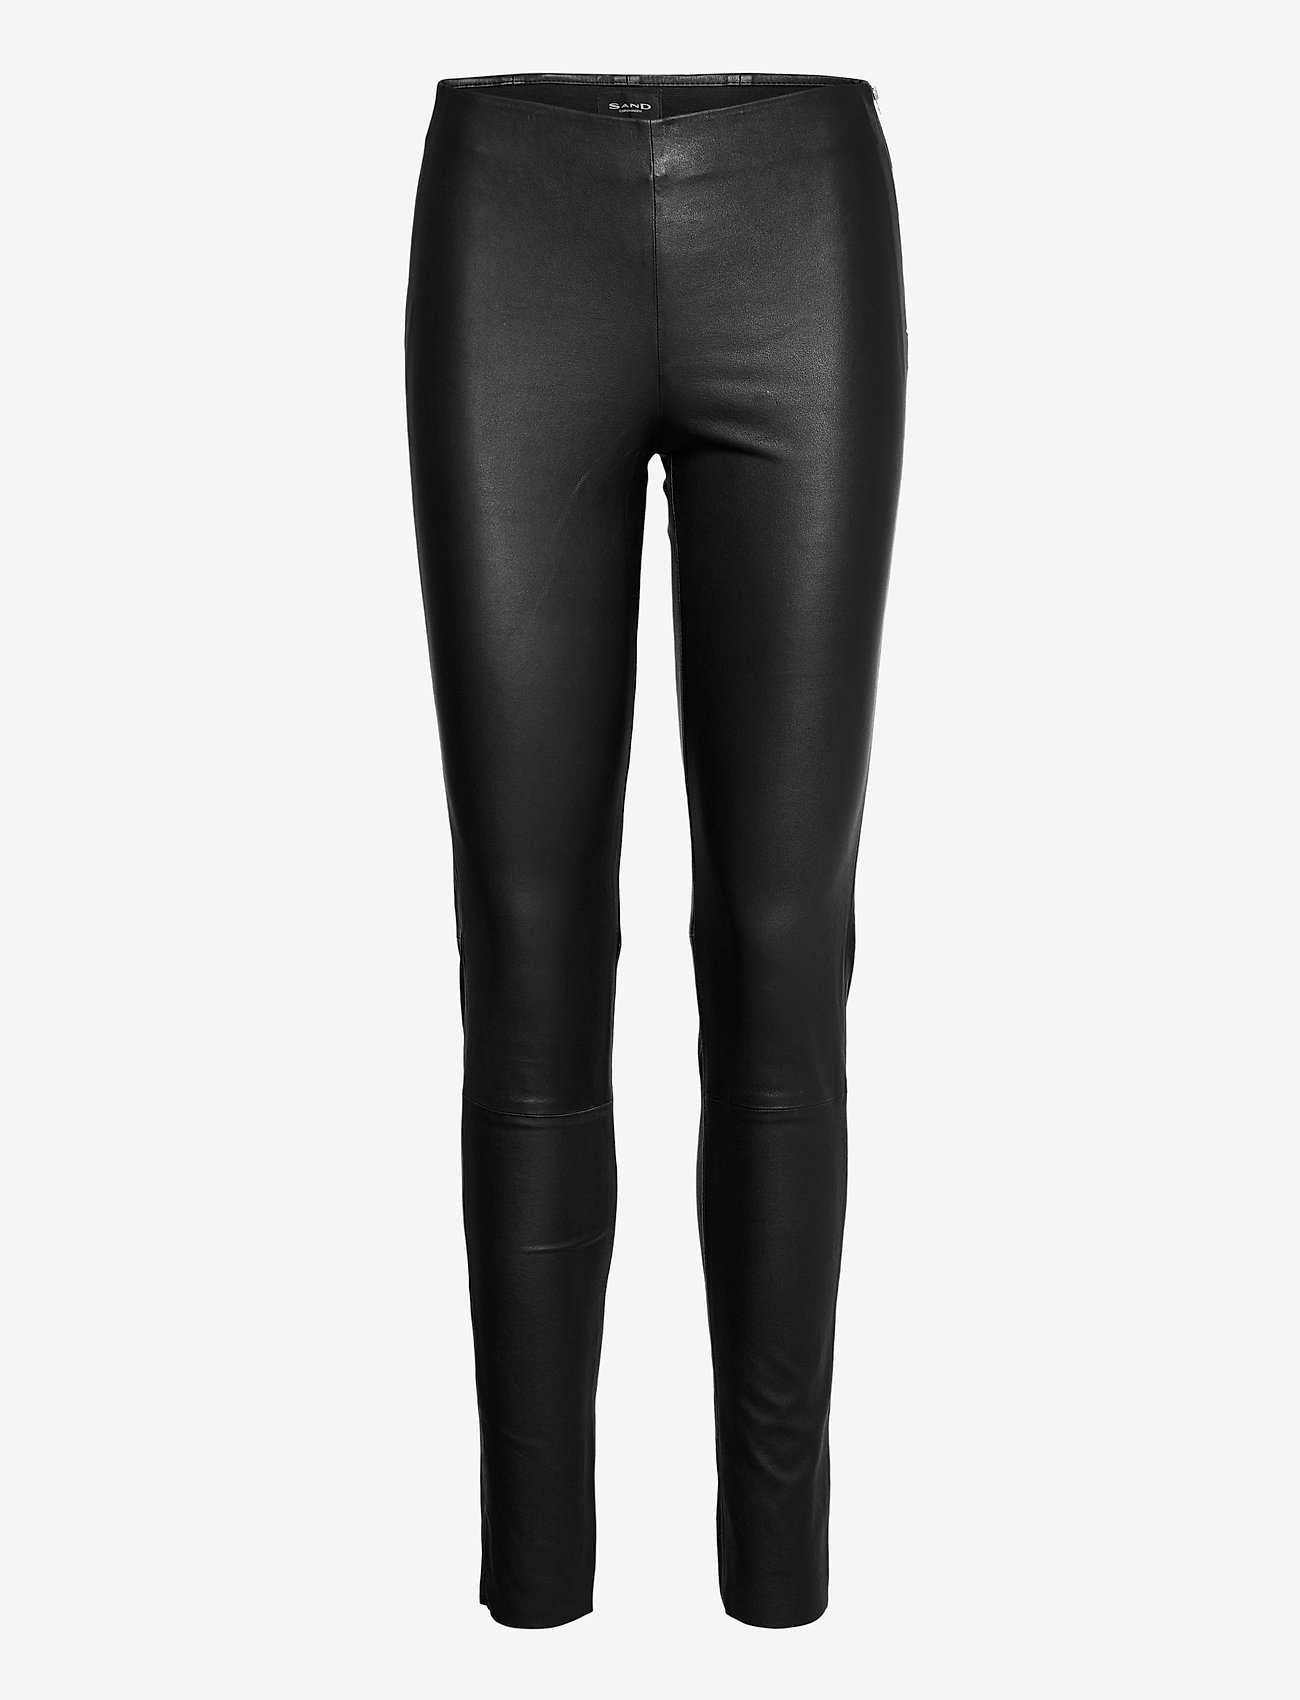 SAND - Stretch Leather - Shamar - pantalons en cuir - black - 0